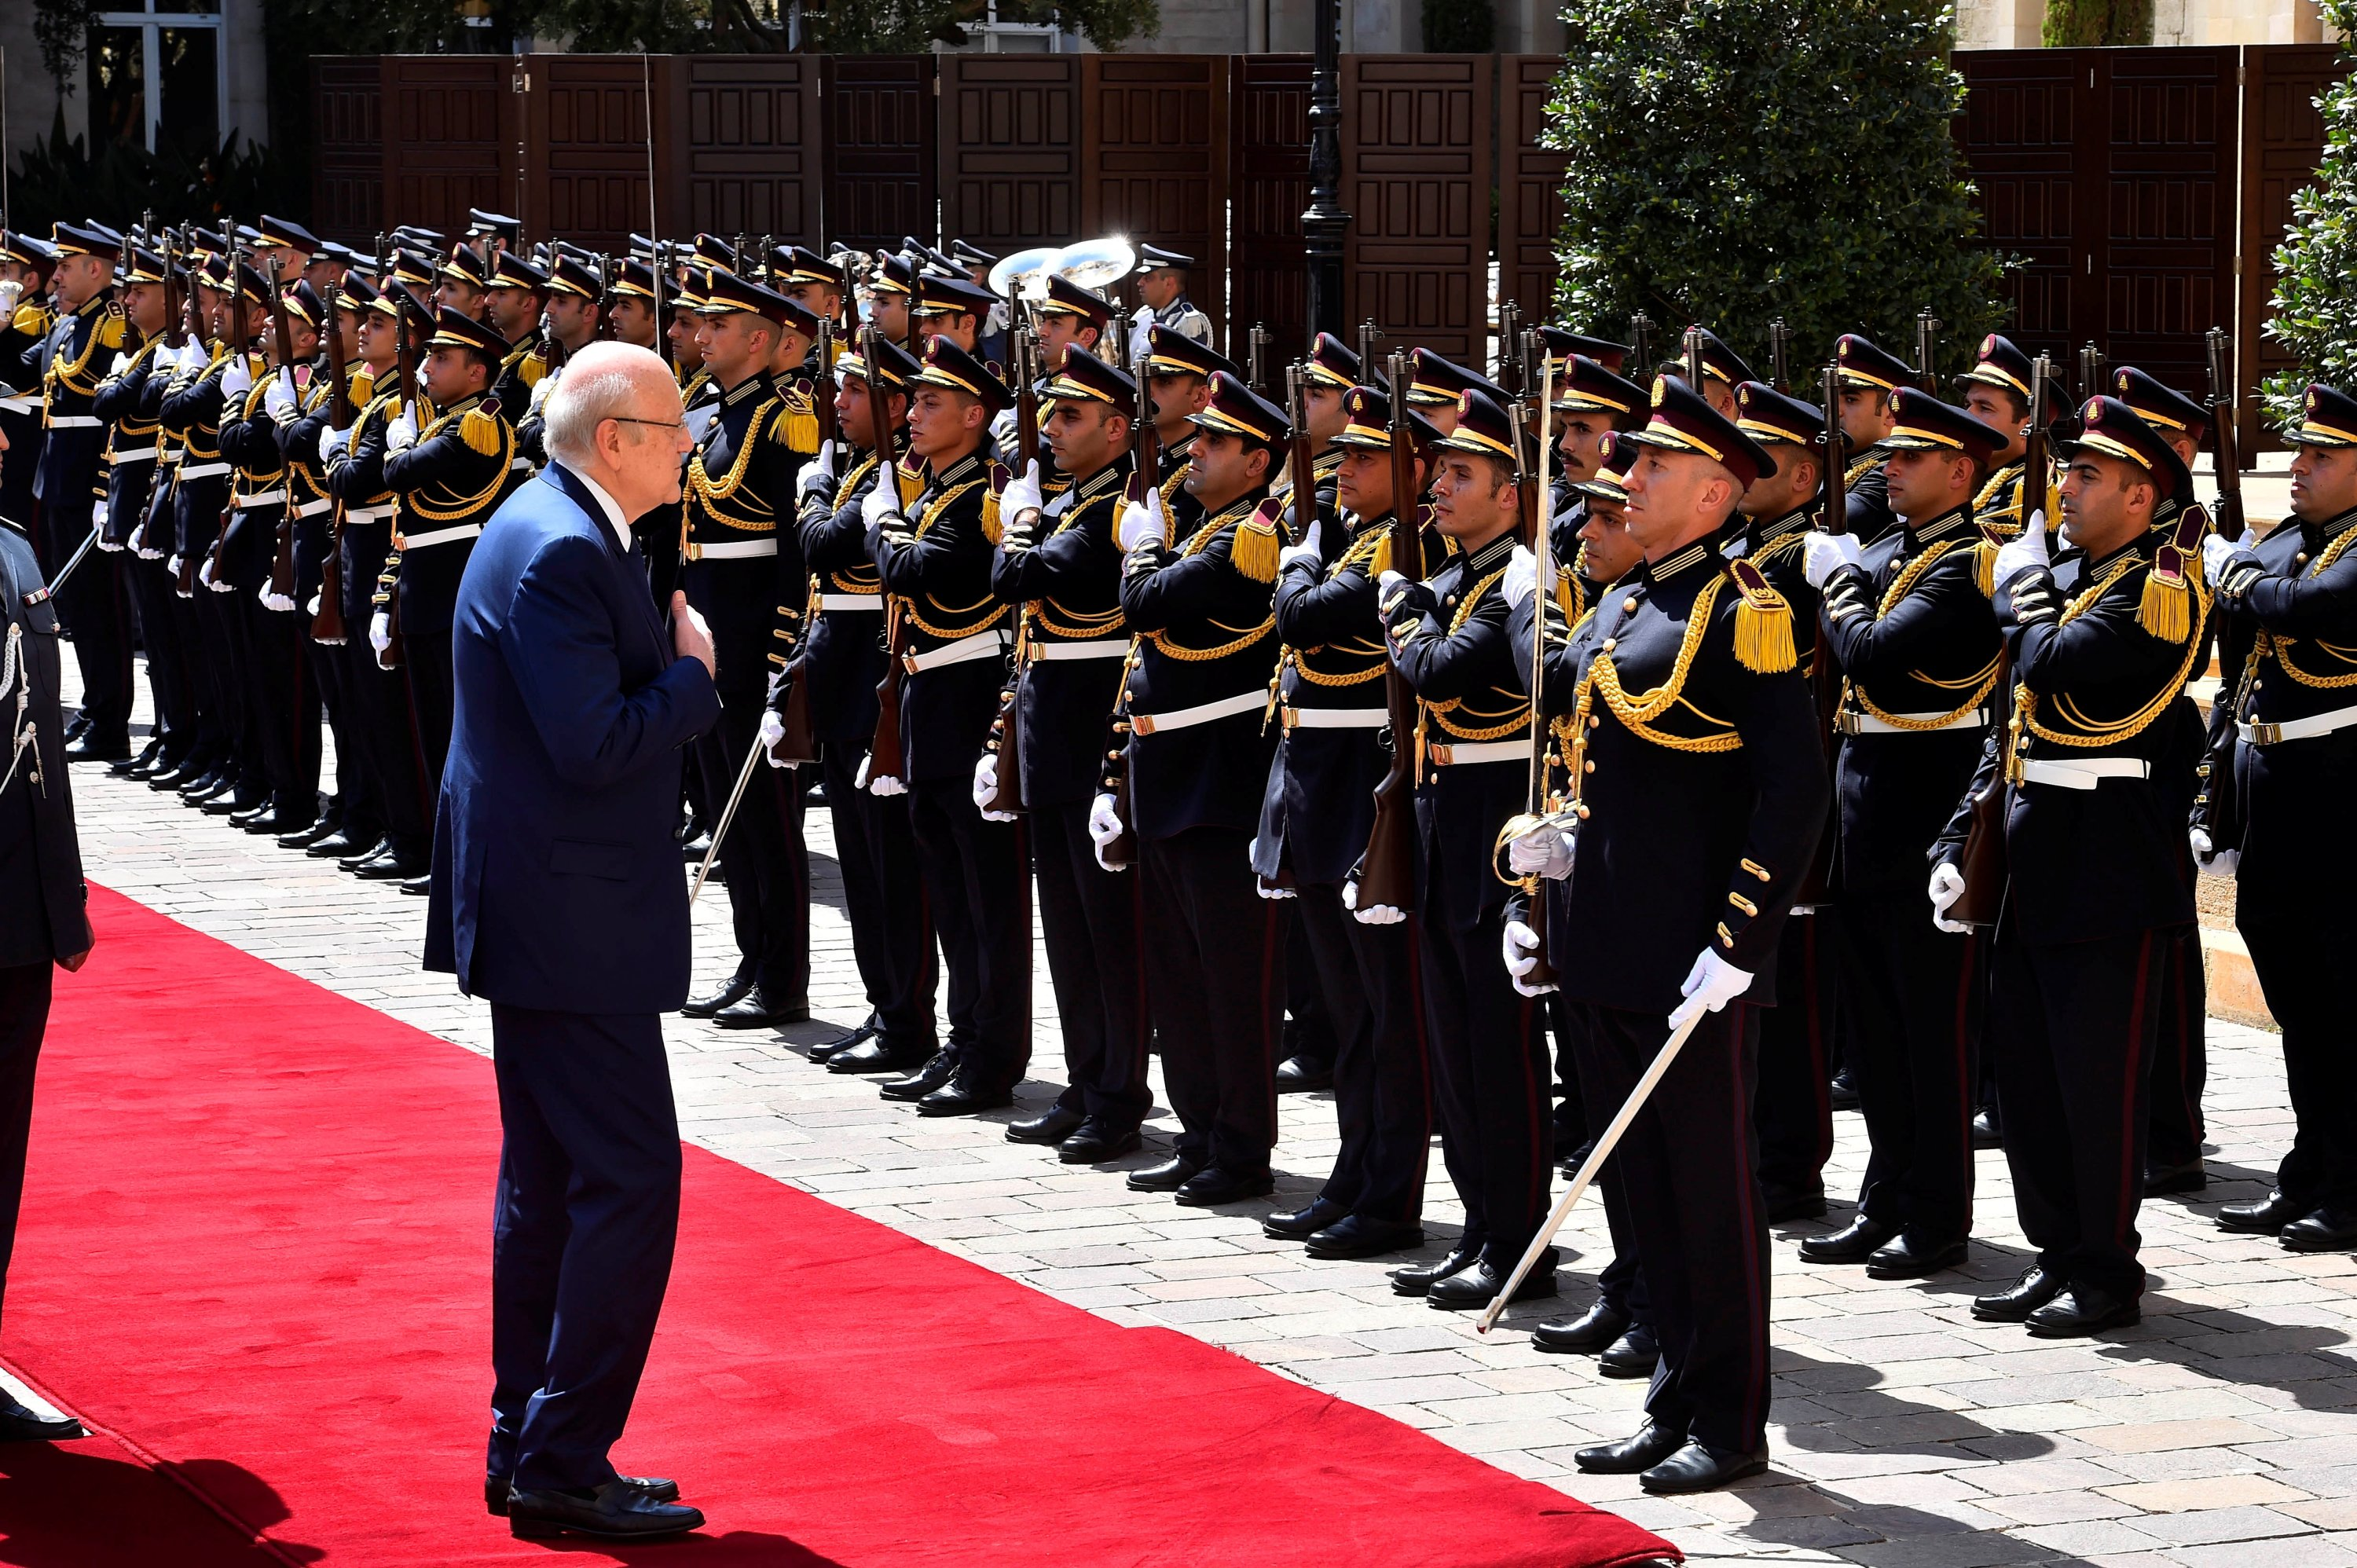 Lebanon's new Prime Minister Najib Mikati reviews an honor guard during an official ceremony to mark his assumption of duties at the Government Palace in Beirut, Lebanon, Sept. 13, 2021. (REUTERS Photo)